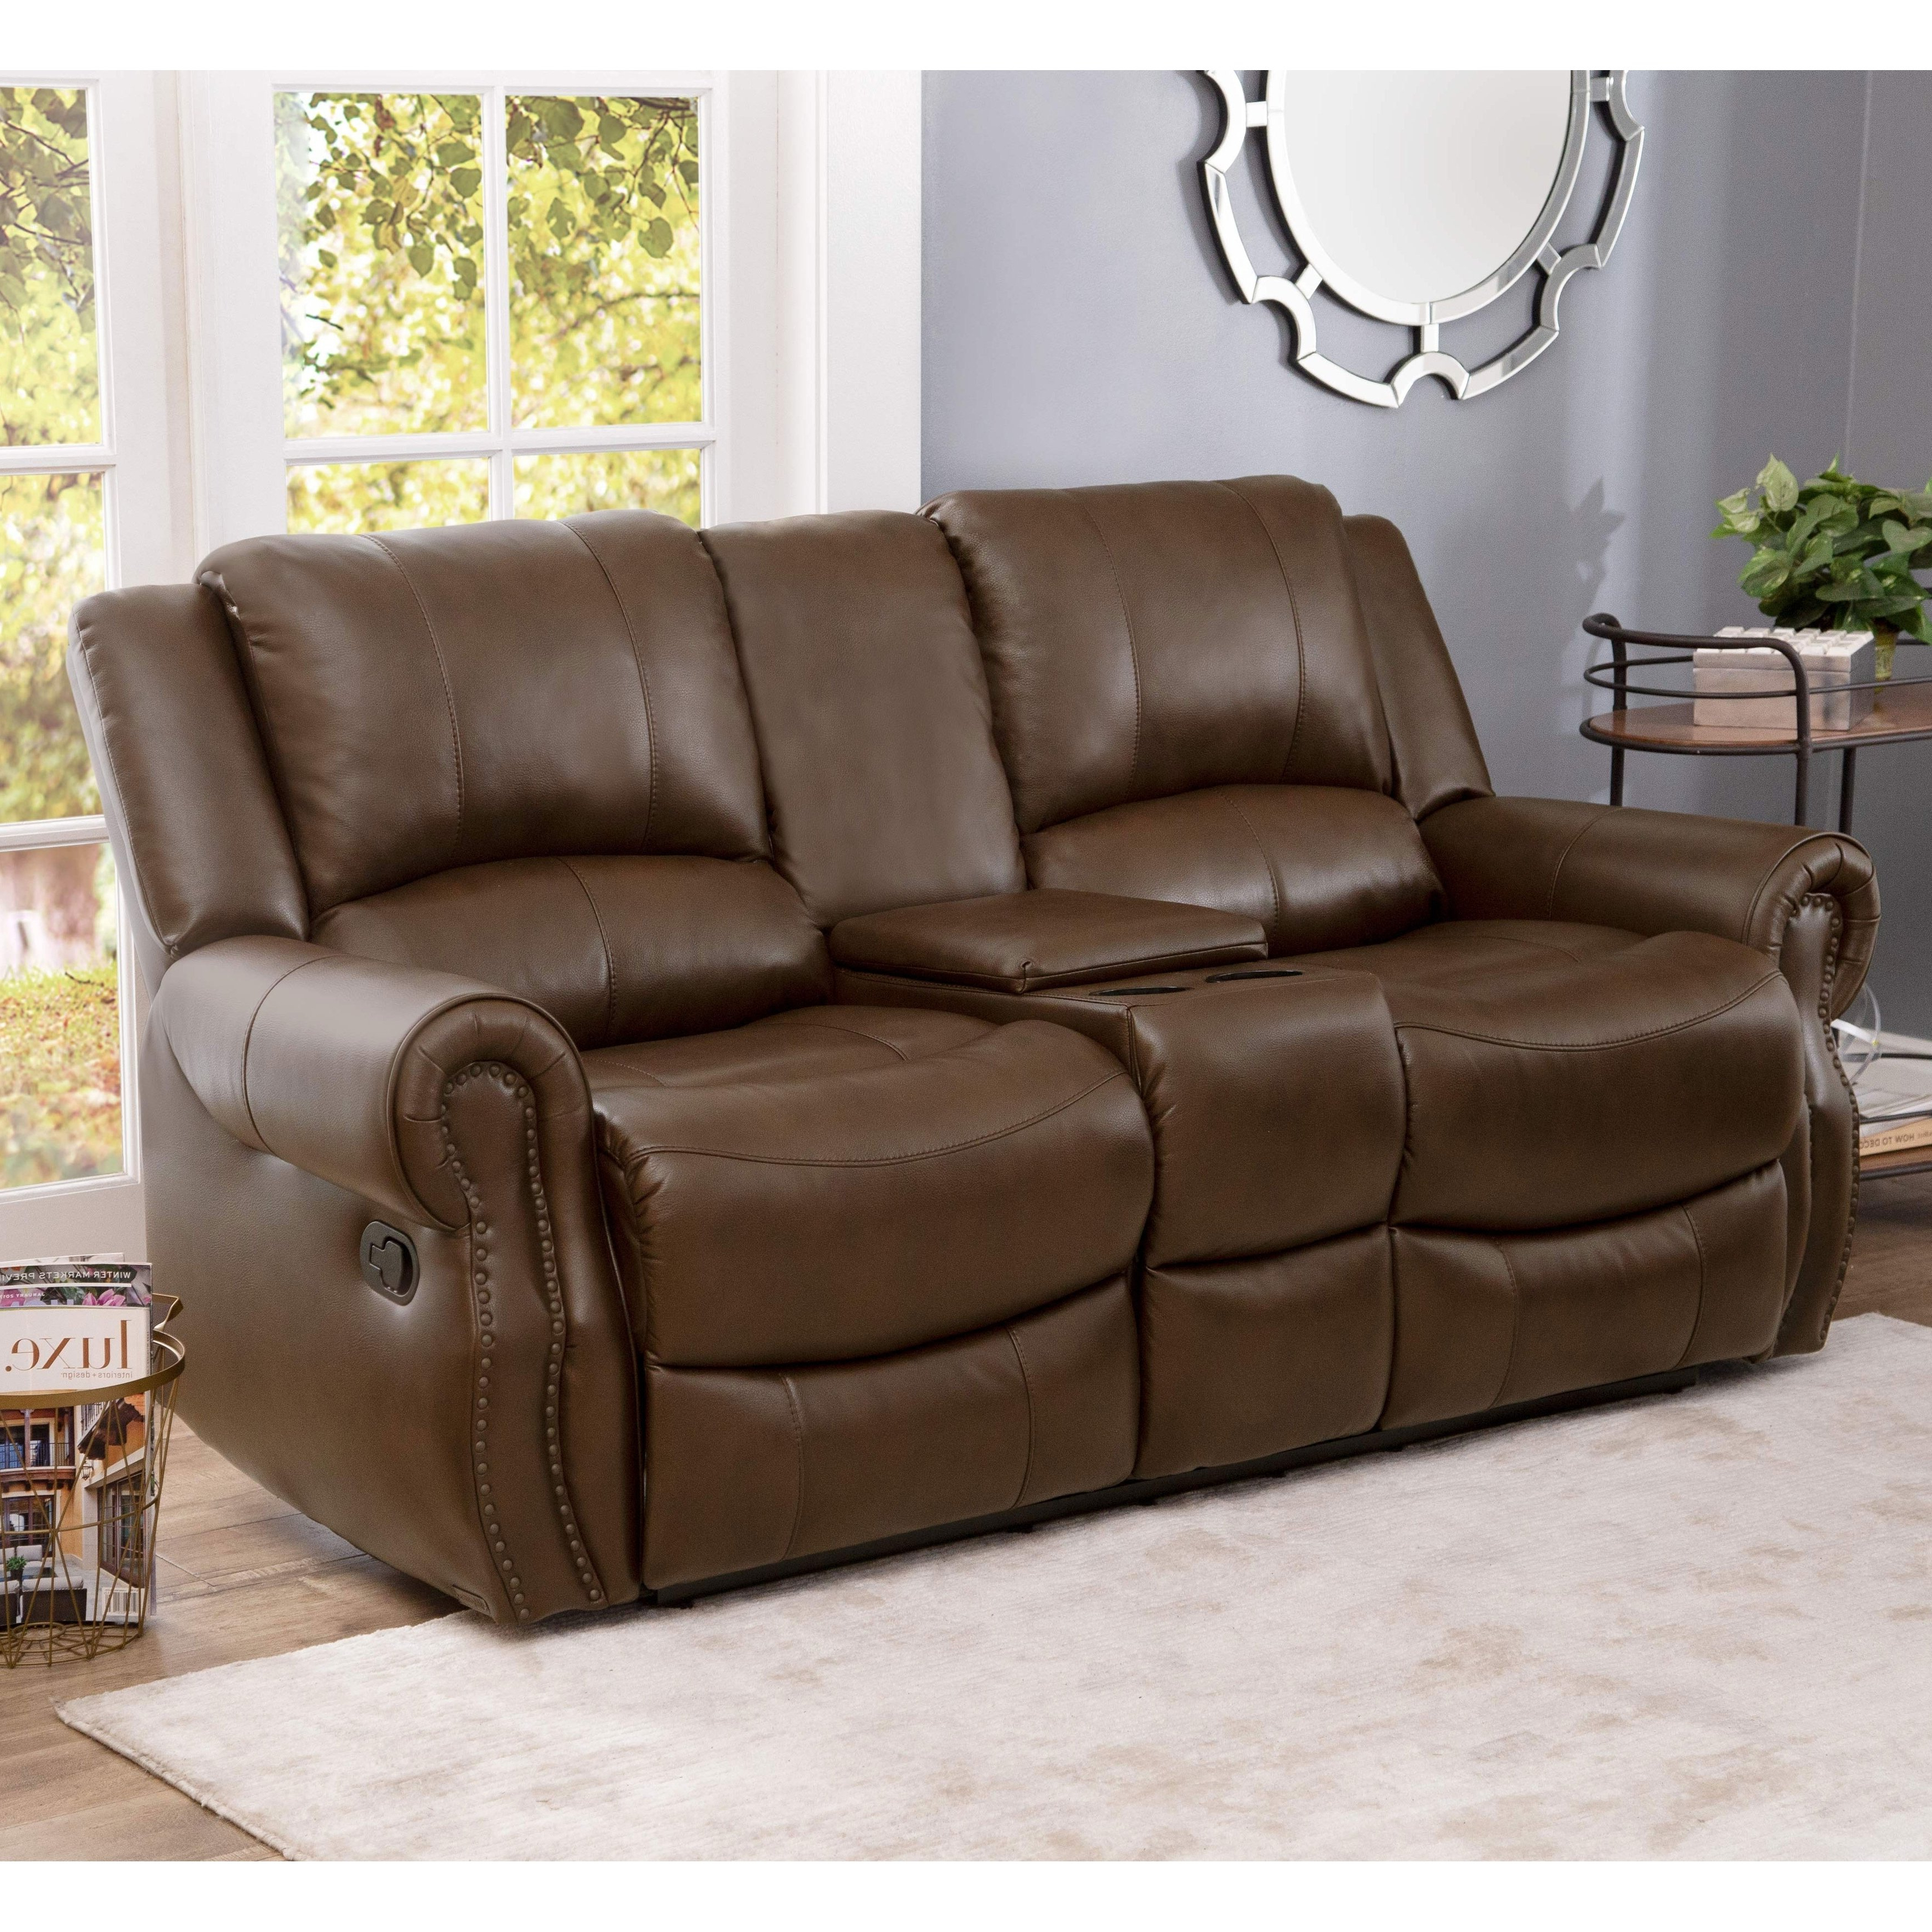 Favorite Mesa Foam Oversized Sofa Chairs With Regard To Shop Abbyson Calabasas Mesa Brown Leather Reclining Console Loveseat (View 18 of 20)